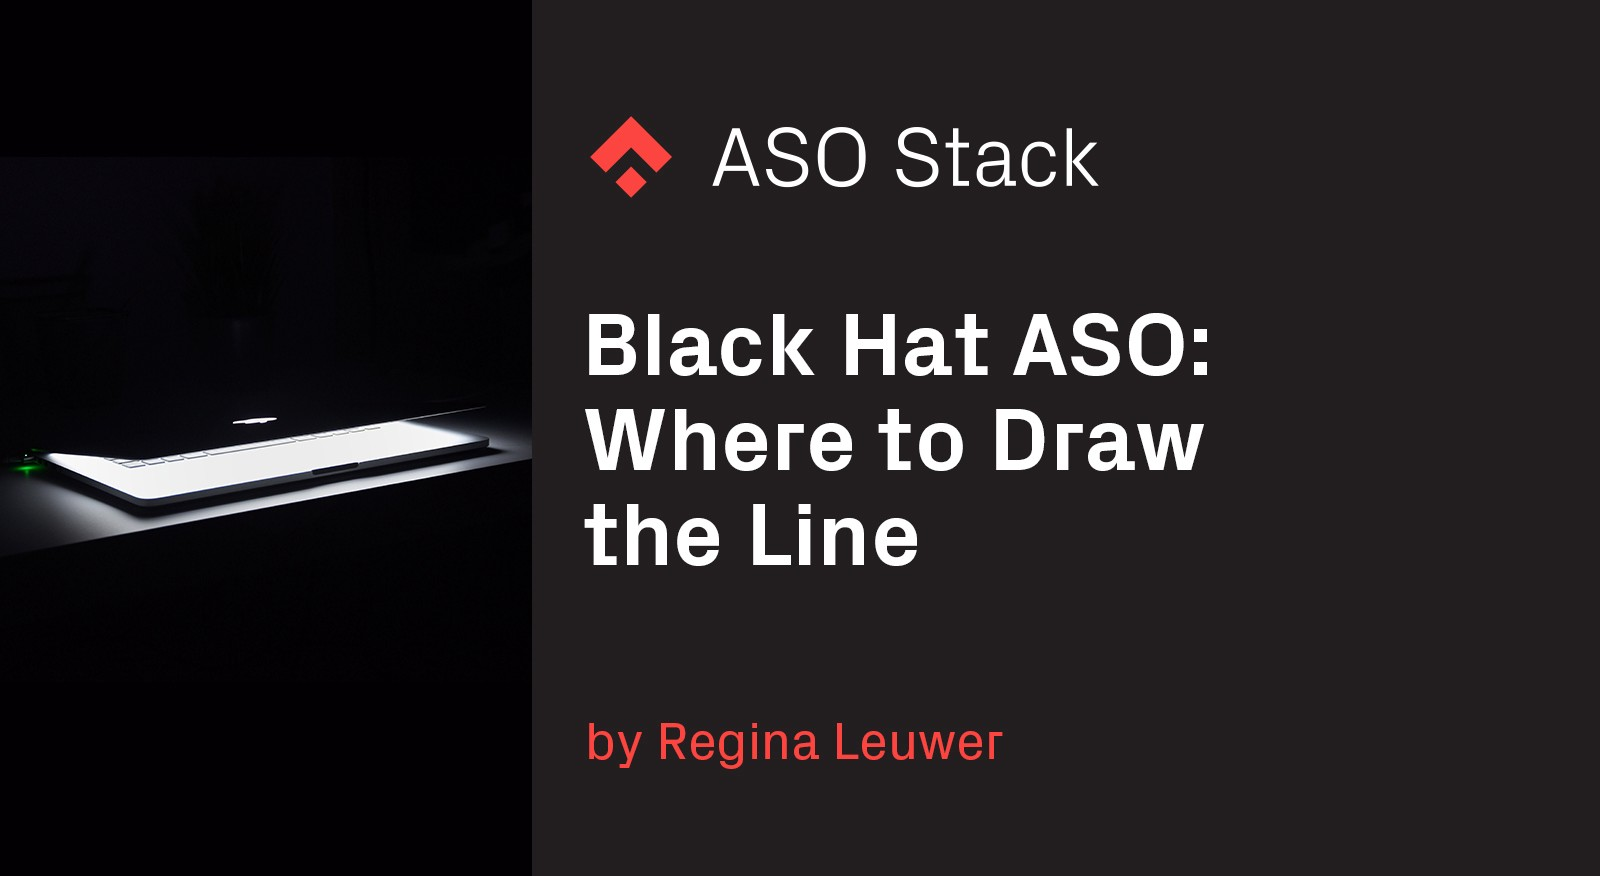 Black Hat Aso Where To Draw The Line App Store Optimization Stack